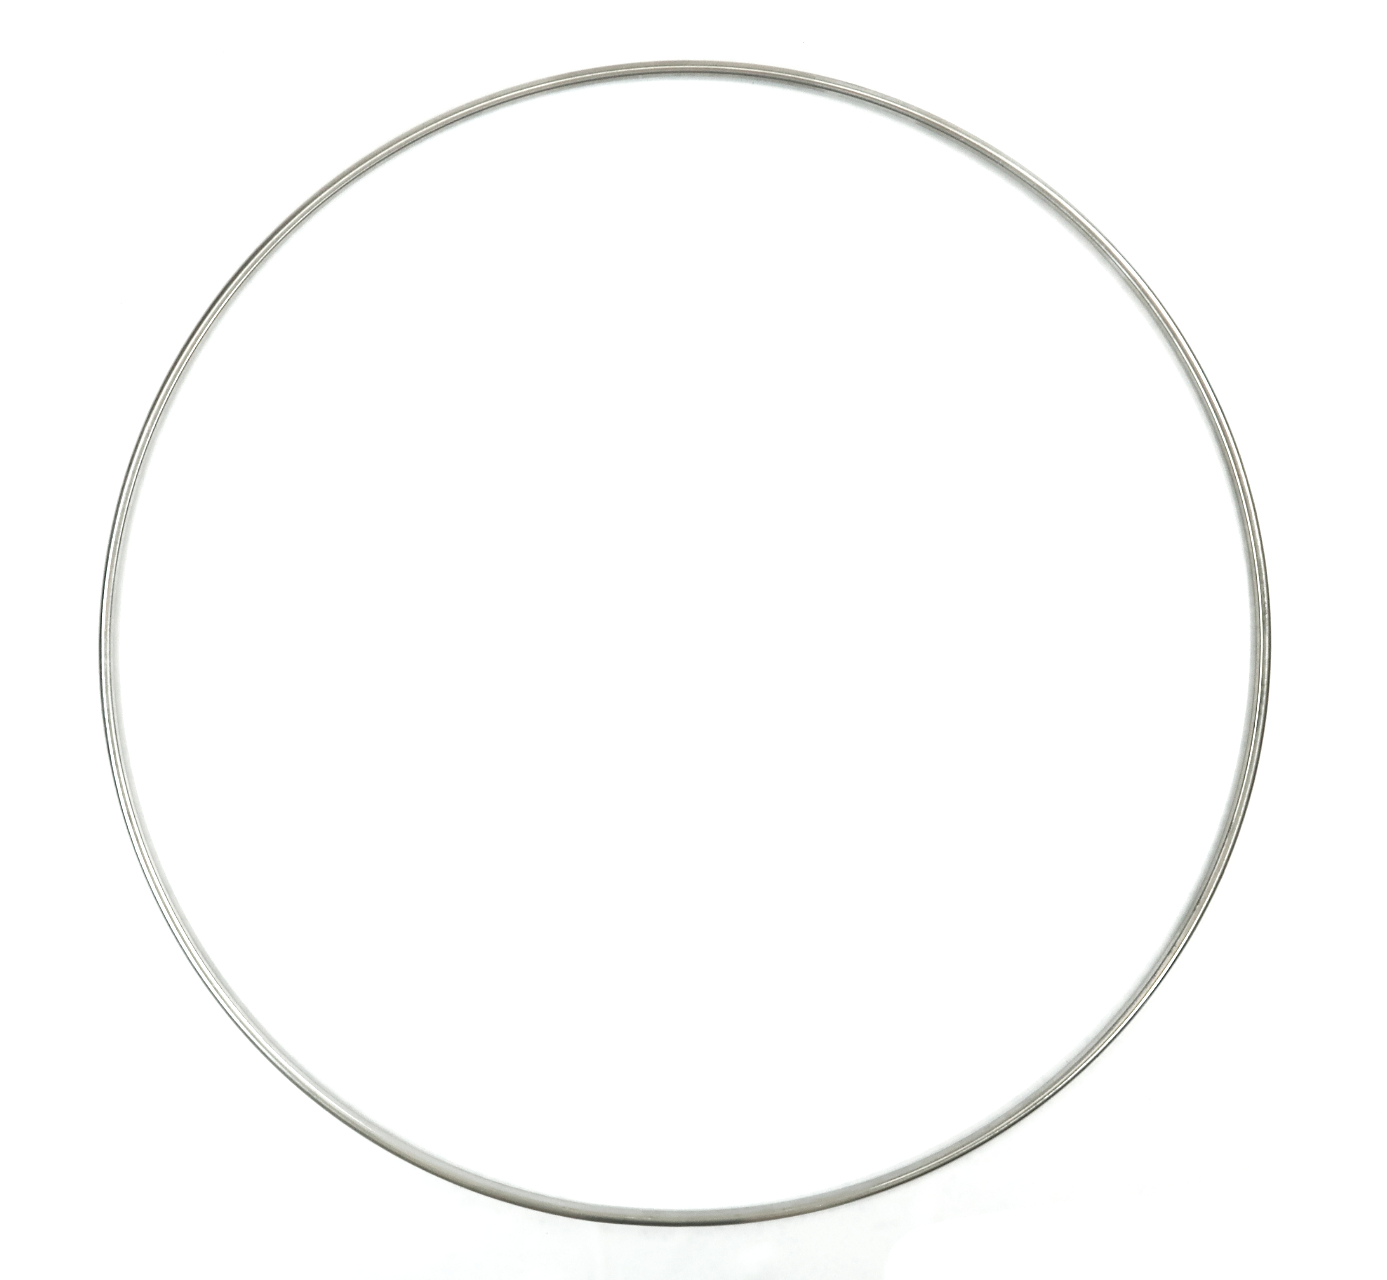 Mouth Ring, 100cm Dia., Stainless